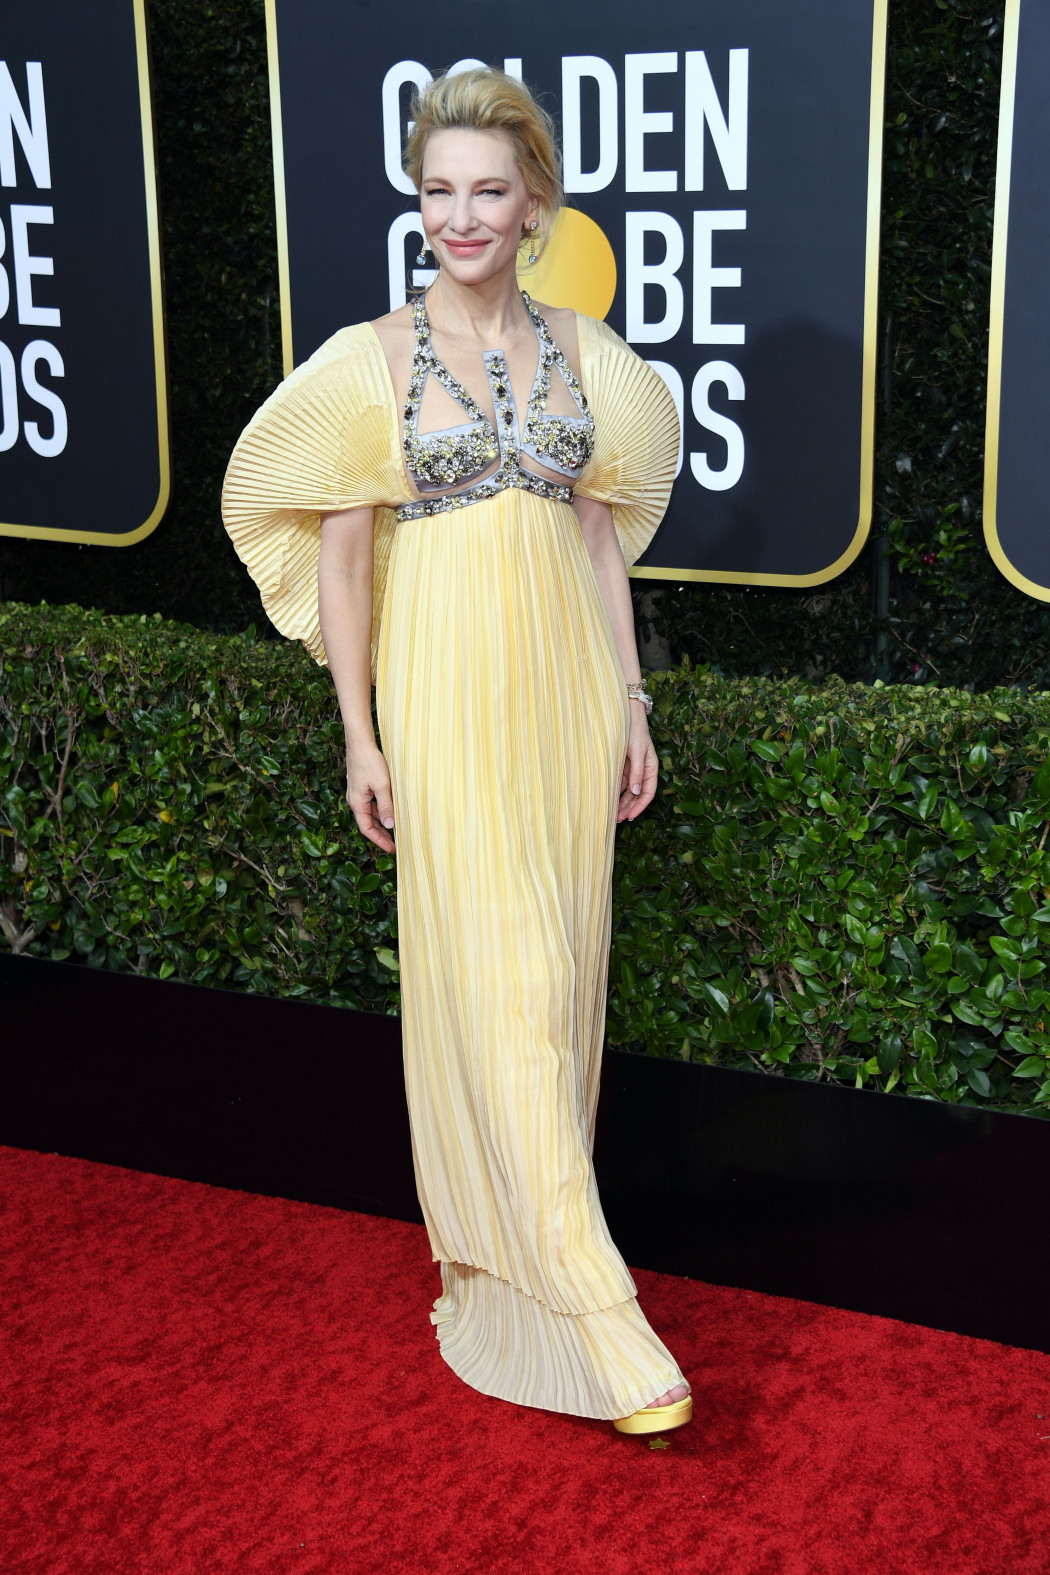 Golden Globes 2020 : les plus beaux looks du tapis rouge - 16